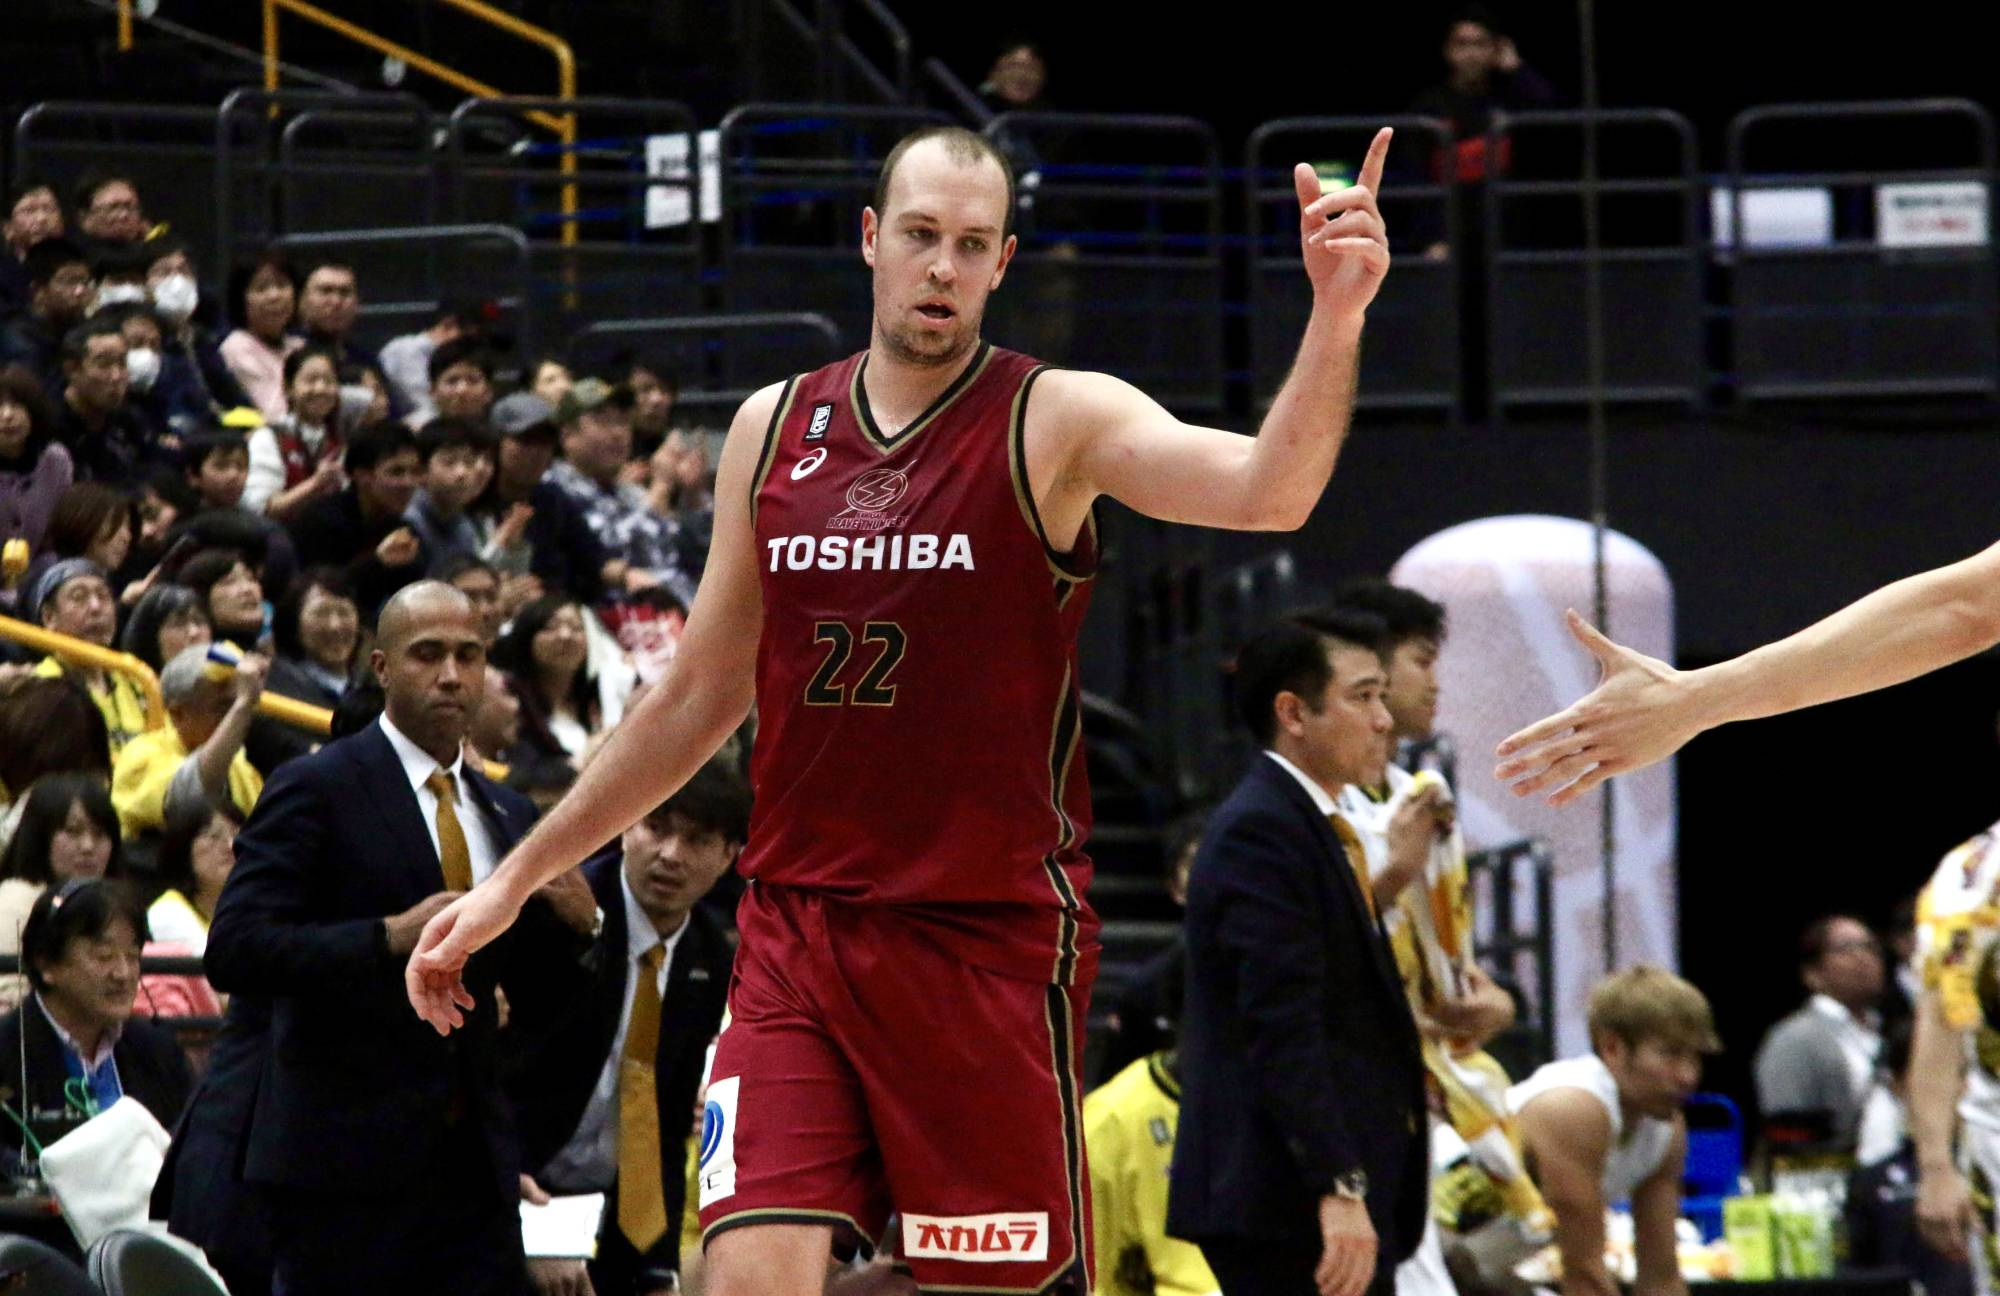 The Brave Thunders' Nick Fazekas competes during his team's Emperor's Cup game against the Sunrockers Shibuya in January. The 35-year-old center has tested positive for COVID-19, the team announced Wednesday. | KAZ NAGATSUKA